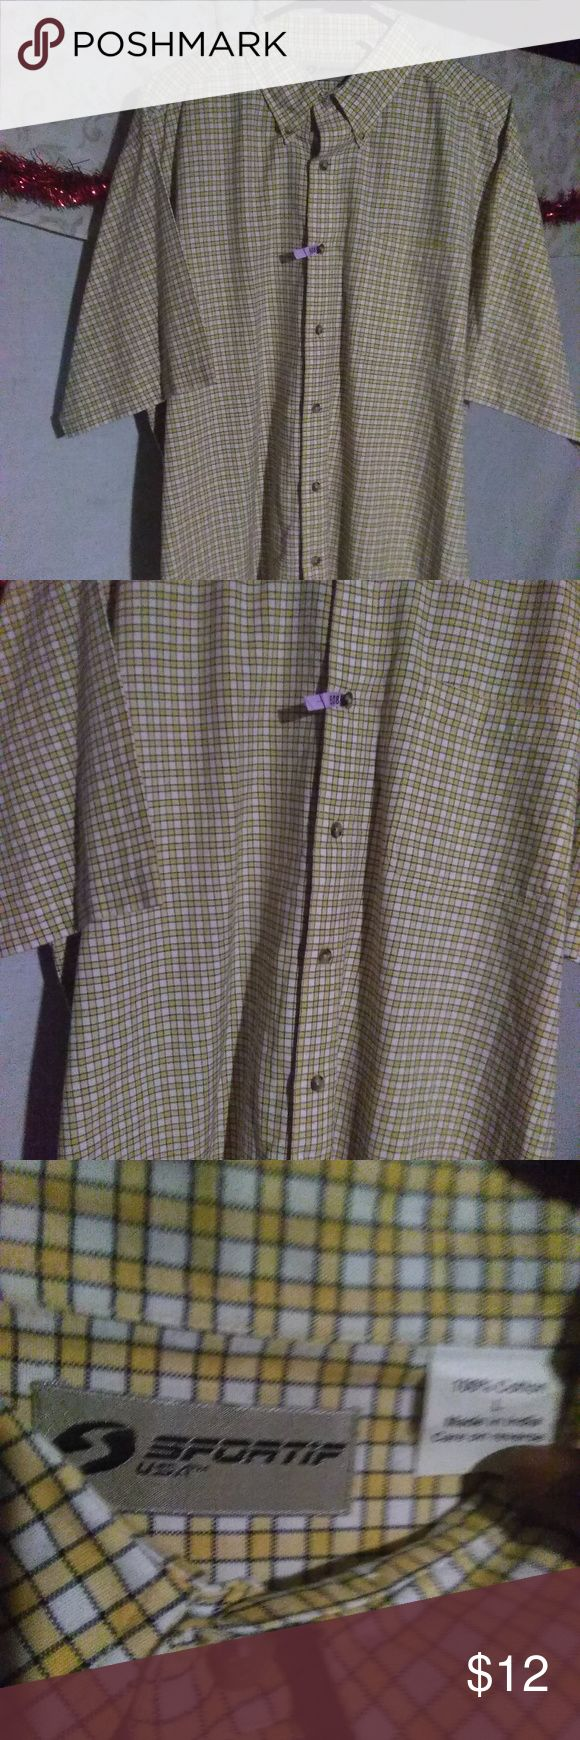 Sportif USA Men's Button Down Shirt (L) NWOT A never used or worn long sleeve button down shirt.The original package broke but there is no damage to the shirt.  It's a Men's size (Large). Color's are White/Yellow checker pattern and made from the following material: 100% Cotton Measurement's:  Length:33 1/4.in  Shoulder:21.in Sleeve:11.in Make an offer on this or any of our item's you like. Bundle and save even more! Bundle deals change! Min 2 for 15% off  Thank you for shopping…